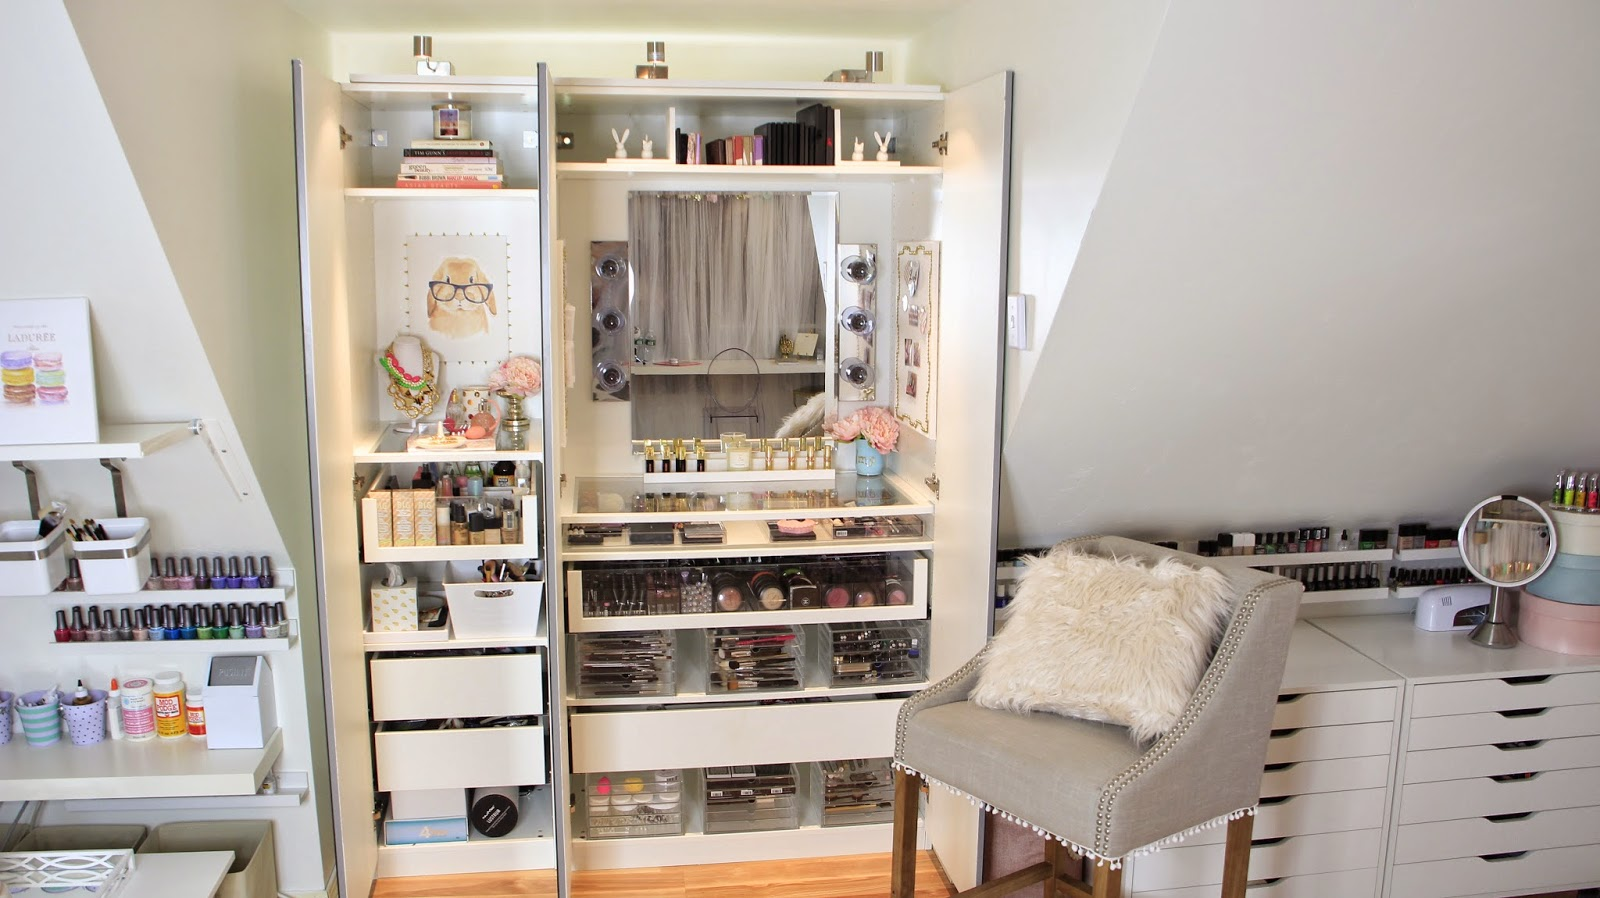 Bedroom storage ideas ikea - Cheap Dose Of Lisa Pullano My Makeup Tour U Storage Ideas With Ikea Bedroom Storage Ideas